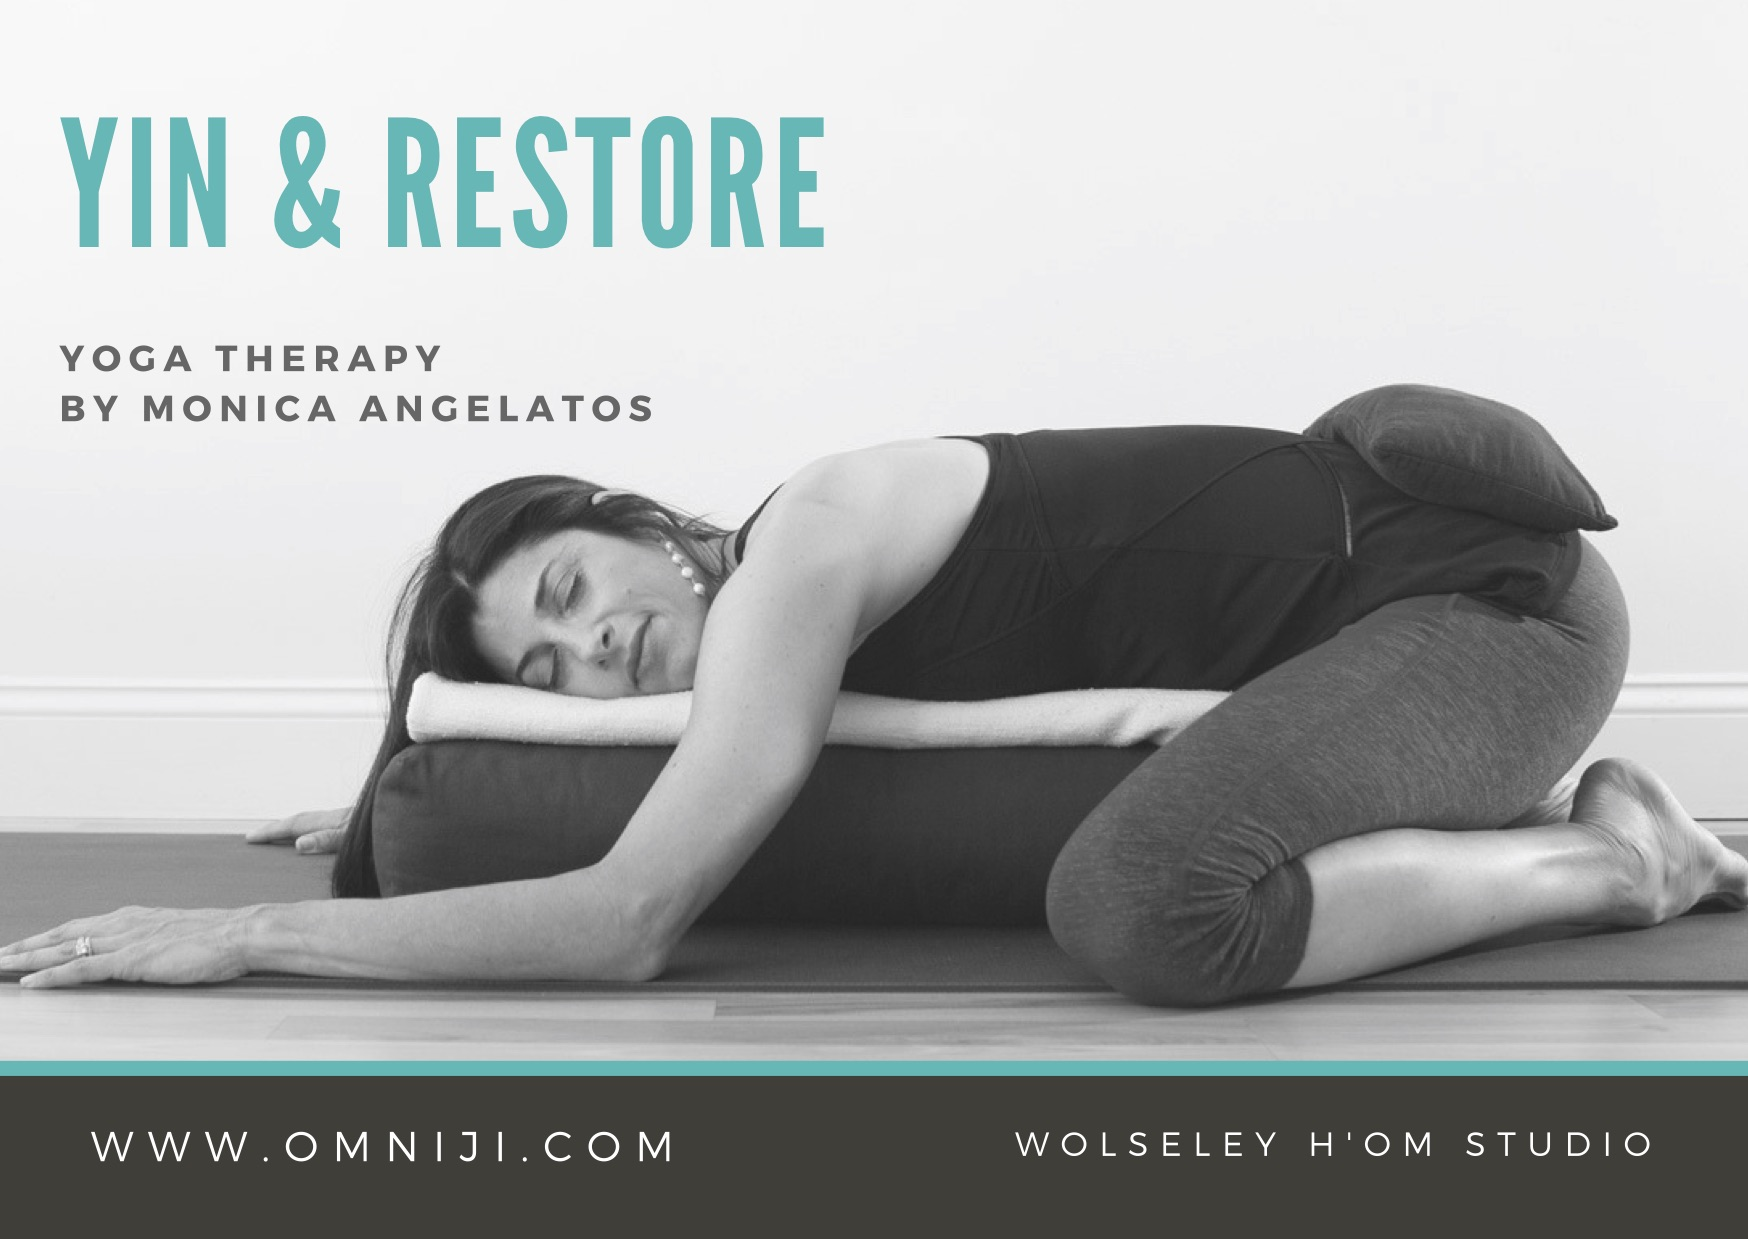 Yin & Restore - Thursdays 12-1:15pmJoin this 5-week registered class session. This specialty class combines, both Yin and Restorative yoga to increase your mobility and range of motion while restoring the nervous system. Deep but gentle stretches, with long holds open up the body, while completely supported with the use of eye-pillows, flax-bags, bolsters, blankest and blocks. A great deal of personal attention can be expected as Monica likes to be hand-on with her assists. This soothing, meditative, self-care class will restore balance between the mind and body and will up lift your heart. $100 + GST